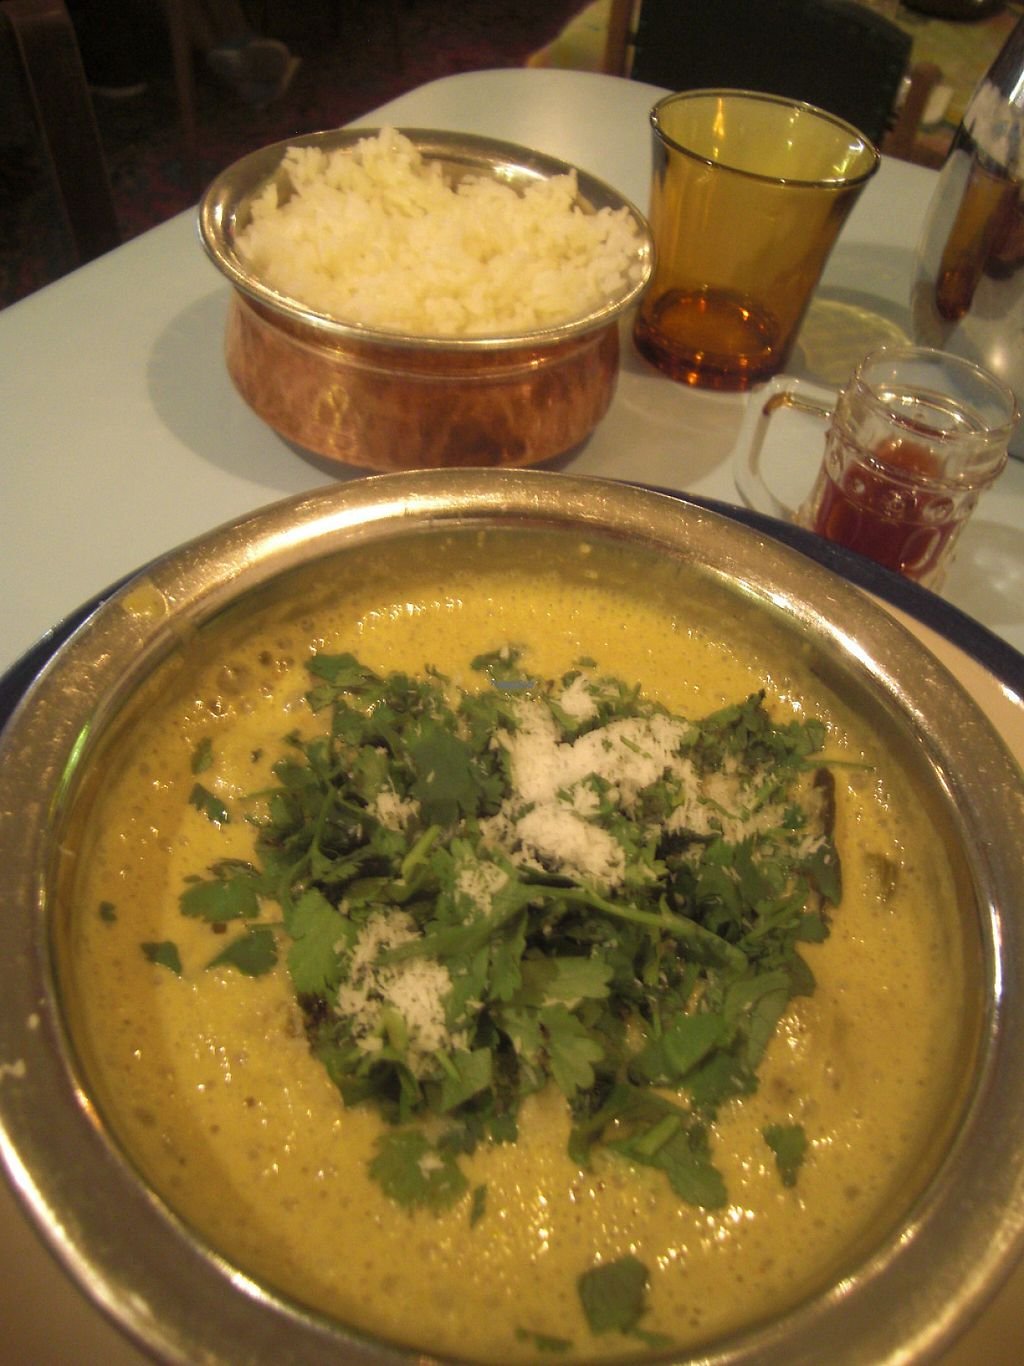 """Photo of Puaa Cafe   by <a href=""""/members/profile/Kimsera"""">Kimsera</a> <br/>Rice with a coconut curry made of butternut <br/> November 24, 2016  - <a href='/contact/abuse/image/71960/193990'>Report</a>"""